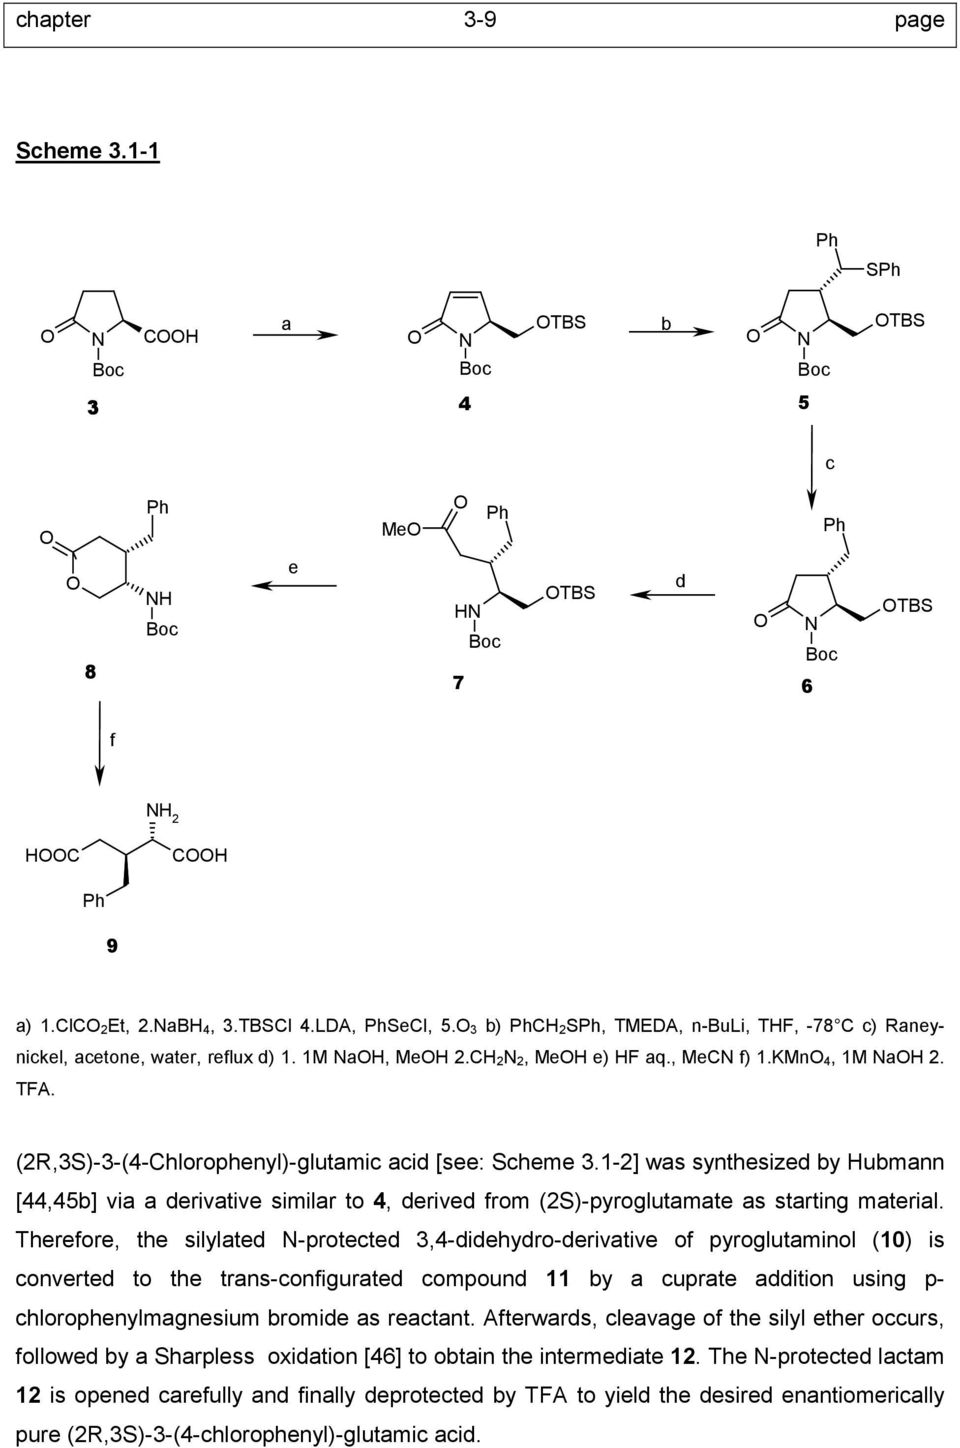 (2R,3S)-3-(4-Chlorophenyl)-glutamic acid [see: Scheme 3.1-2] was synthesized by ubmann [44,45b] via a derivative similar to 4, derived from (2S)-pyroglutamate as starting material.